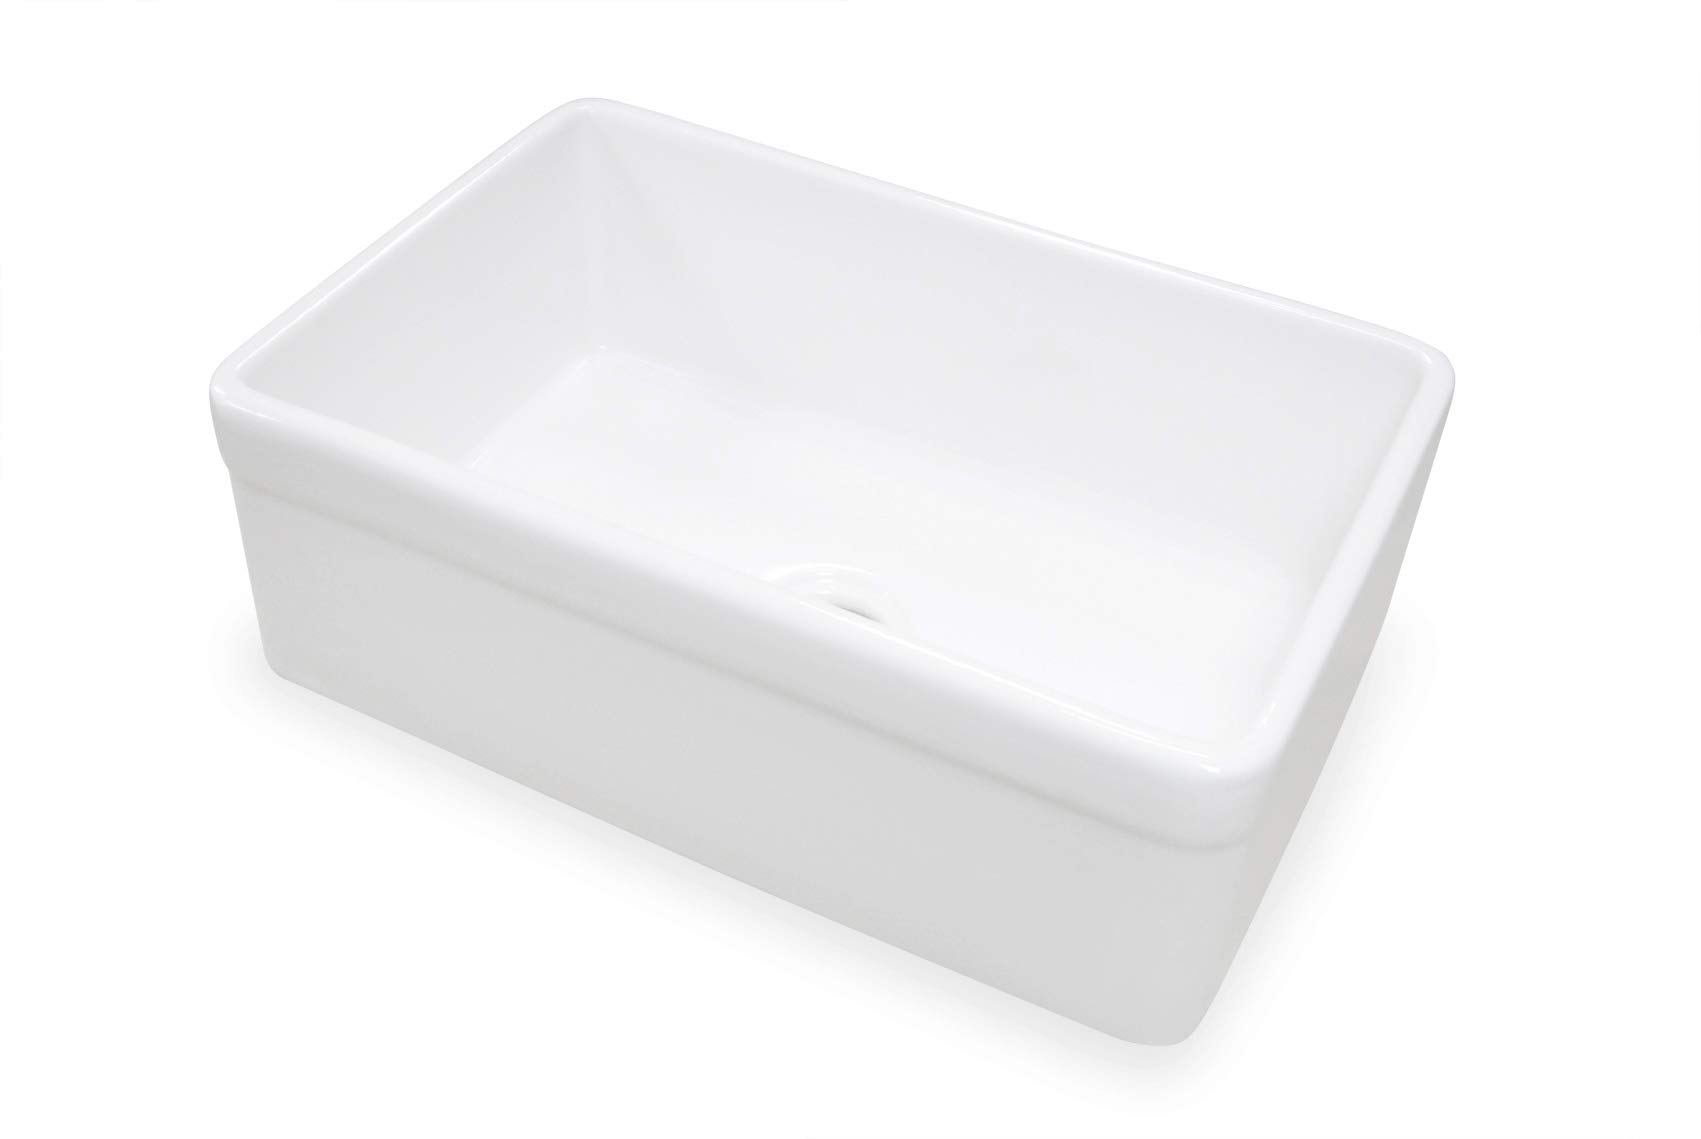 TRUE FIRECLAY Stria Reversible 30'' Apron Front Sink by MOCCOA, Farmhouse Kitchen Sink White … by MOCCOA (Image #2)